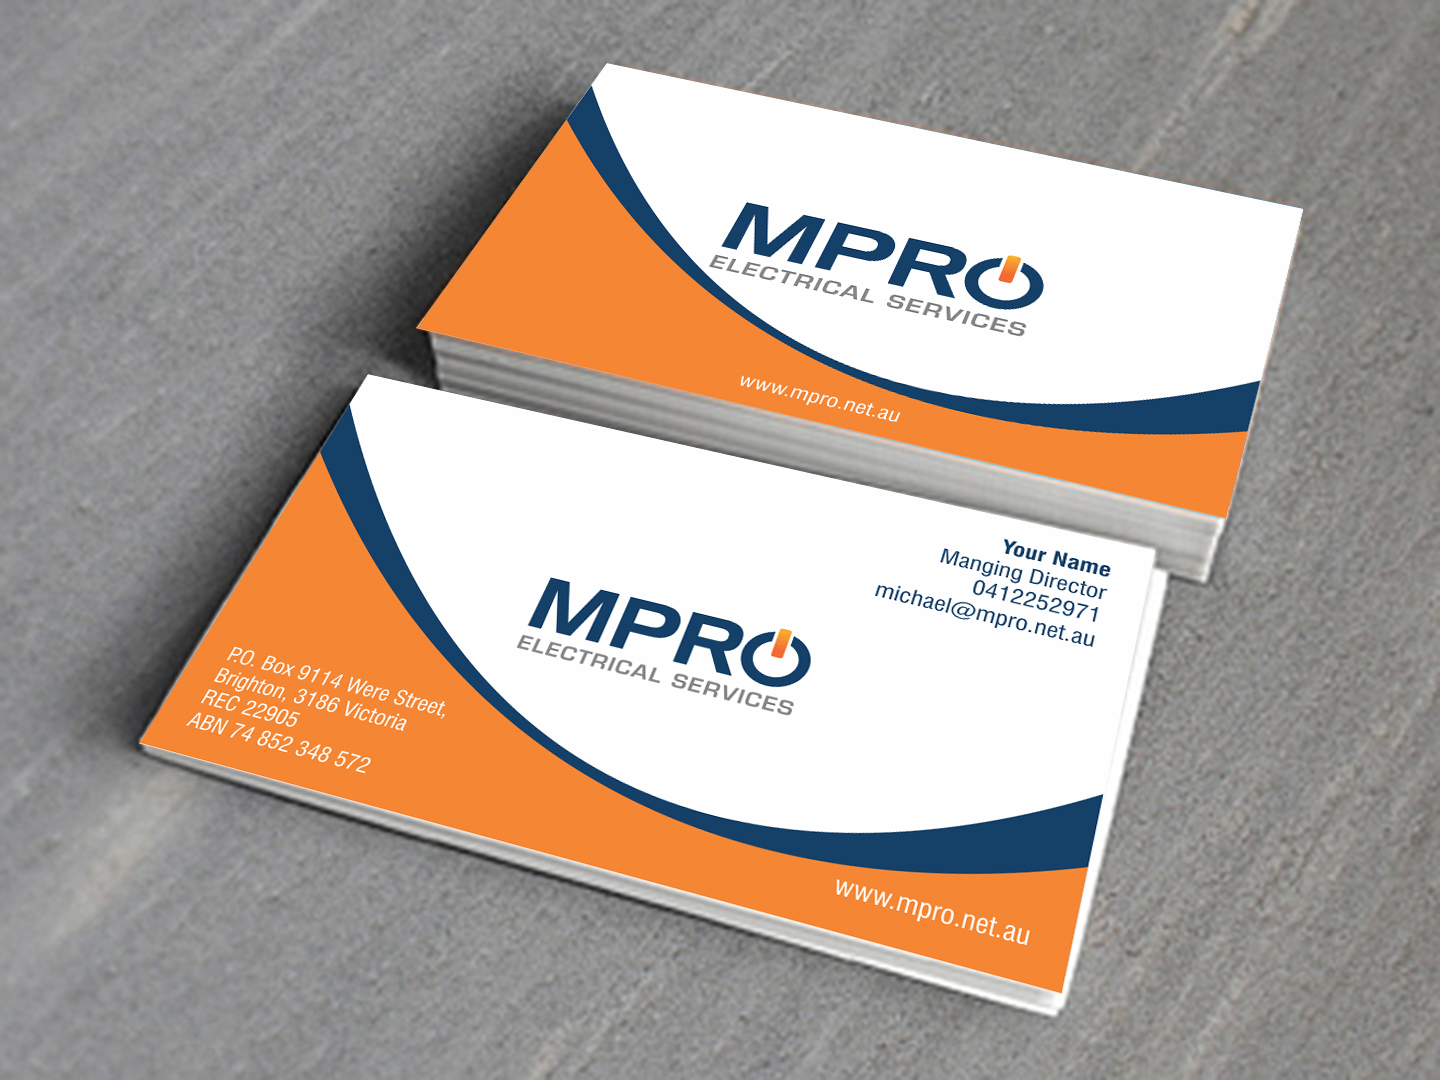 Business card design logodee custom logo and web design company business card design reheart Image collections